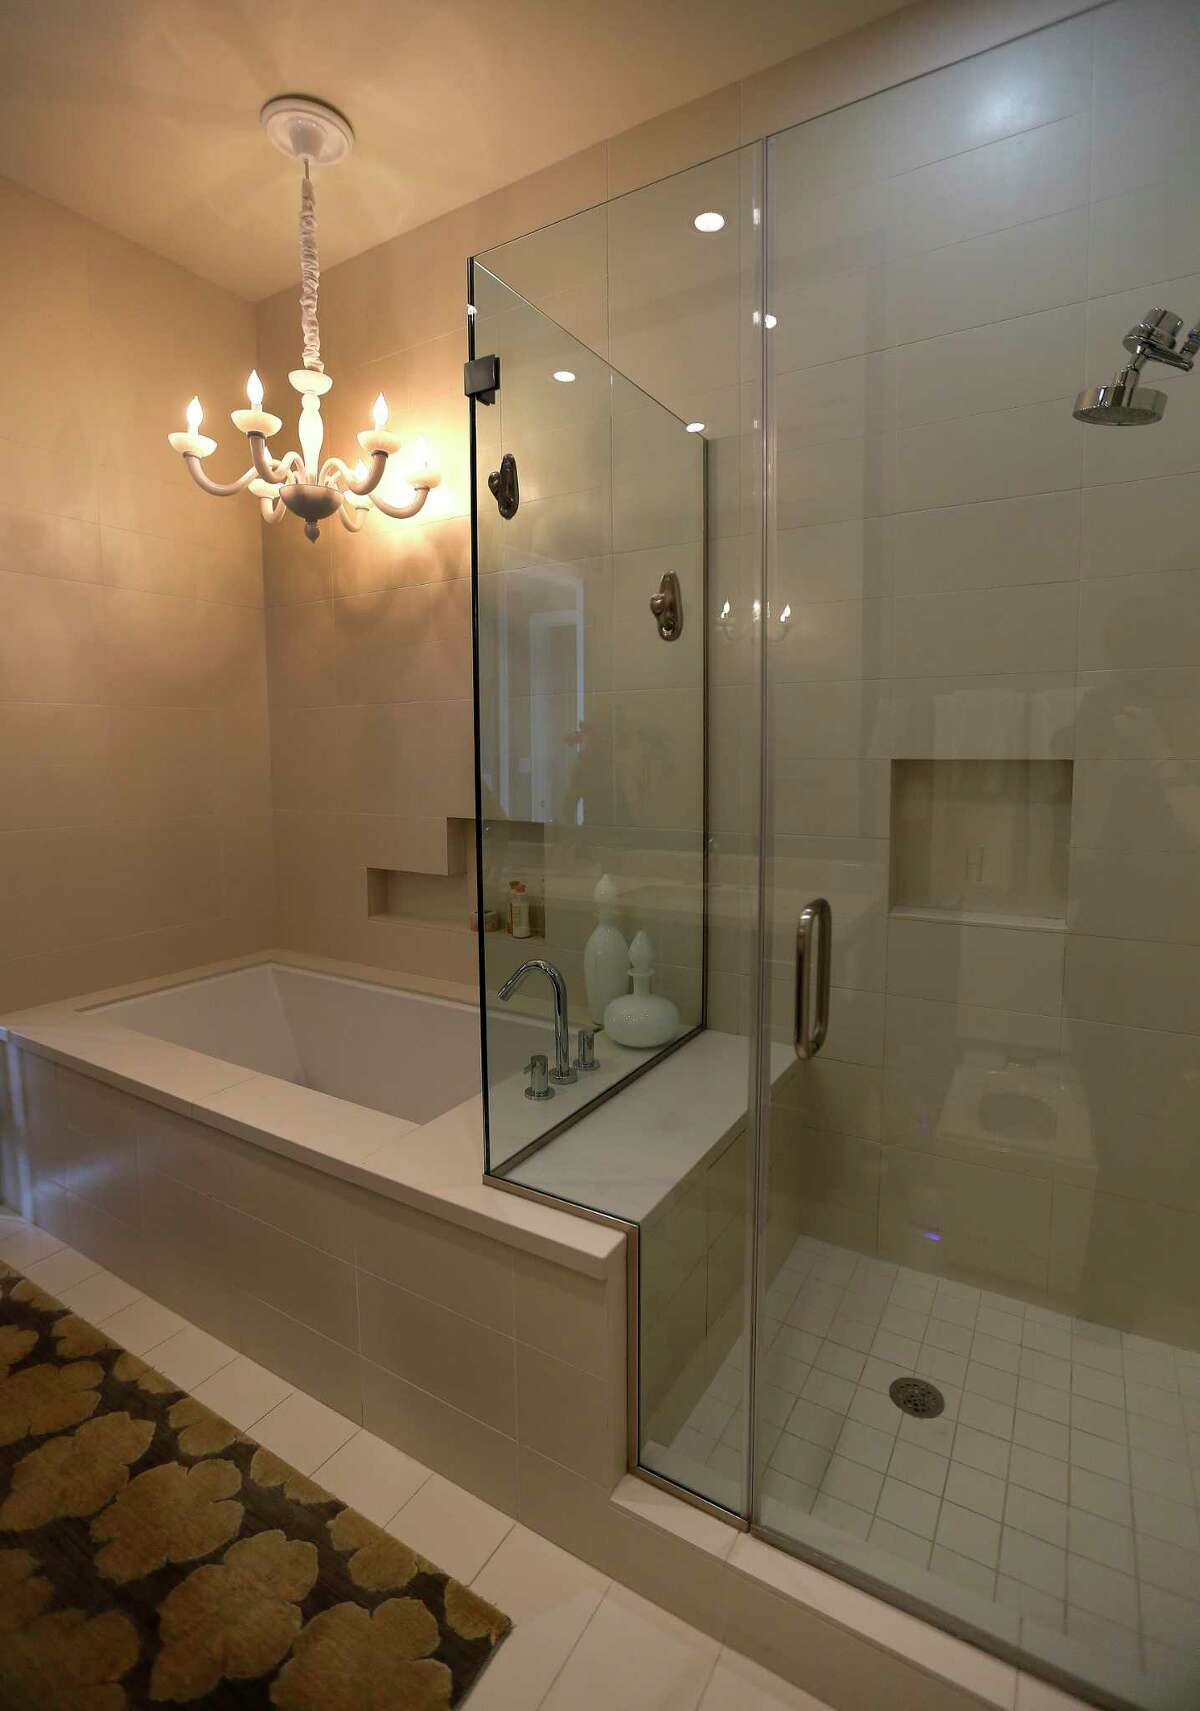 The master bathroom with a chandelier over the tub at the home of Doctors Kathy Frazar and Tom Hedge at Highland Tower,Thursday, April 28, 2016, in Houston. The couple moved from a West U home to an inner loop high rise after their daughter left for college. The empty nesters wanted a home with a more modern aesthetic to streamline their busy lifestyle. They've hired an interior designer, Cheryl Baker, and did a substantial remodeling job throughout. ( Karen Warren / Houston Chronicle )